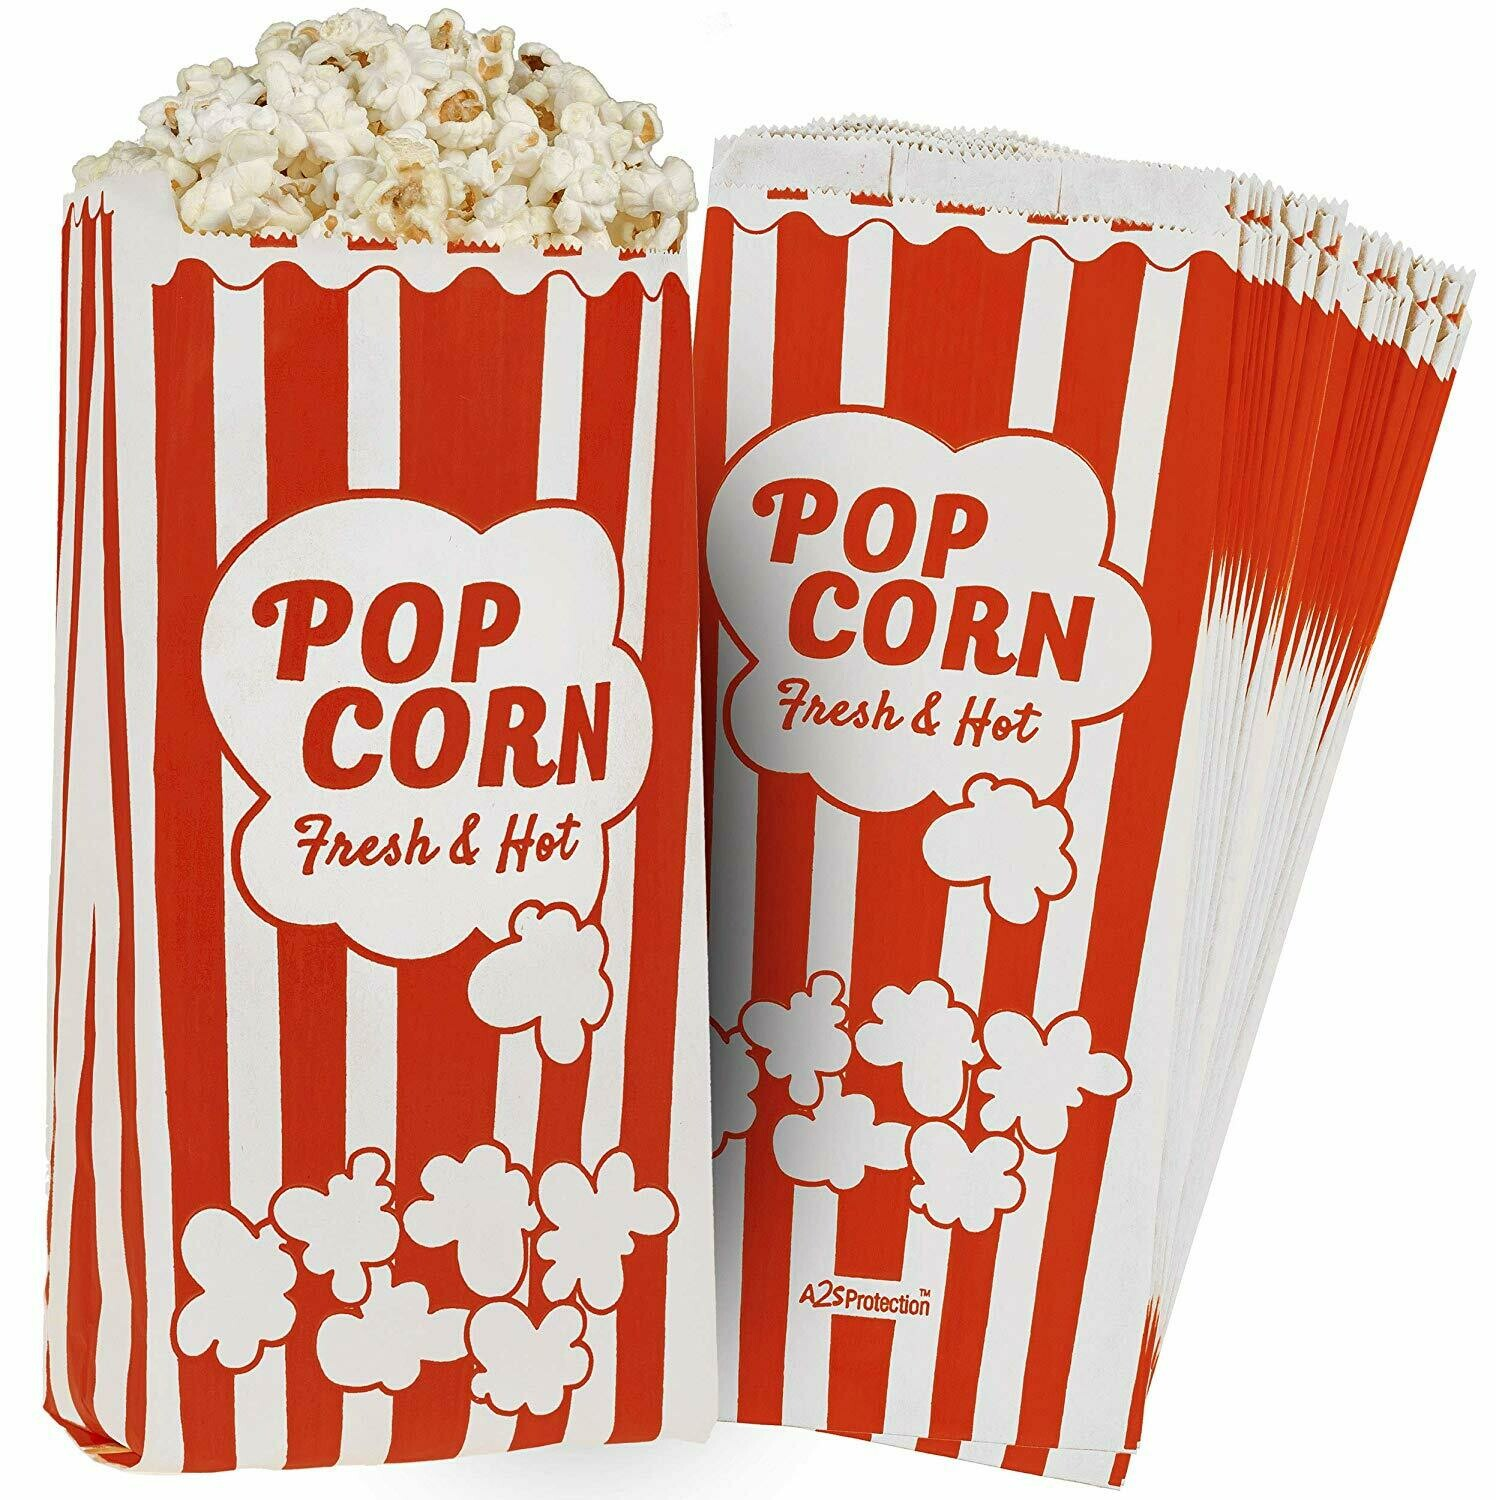 Popcorn Friday - To be announced